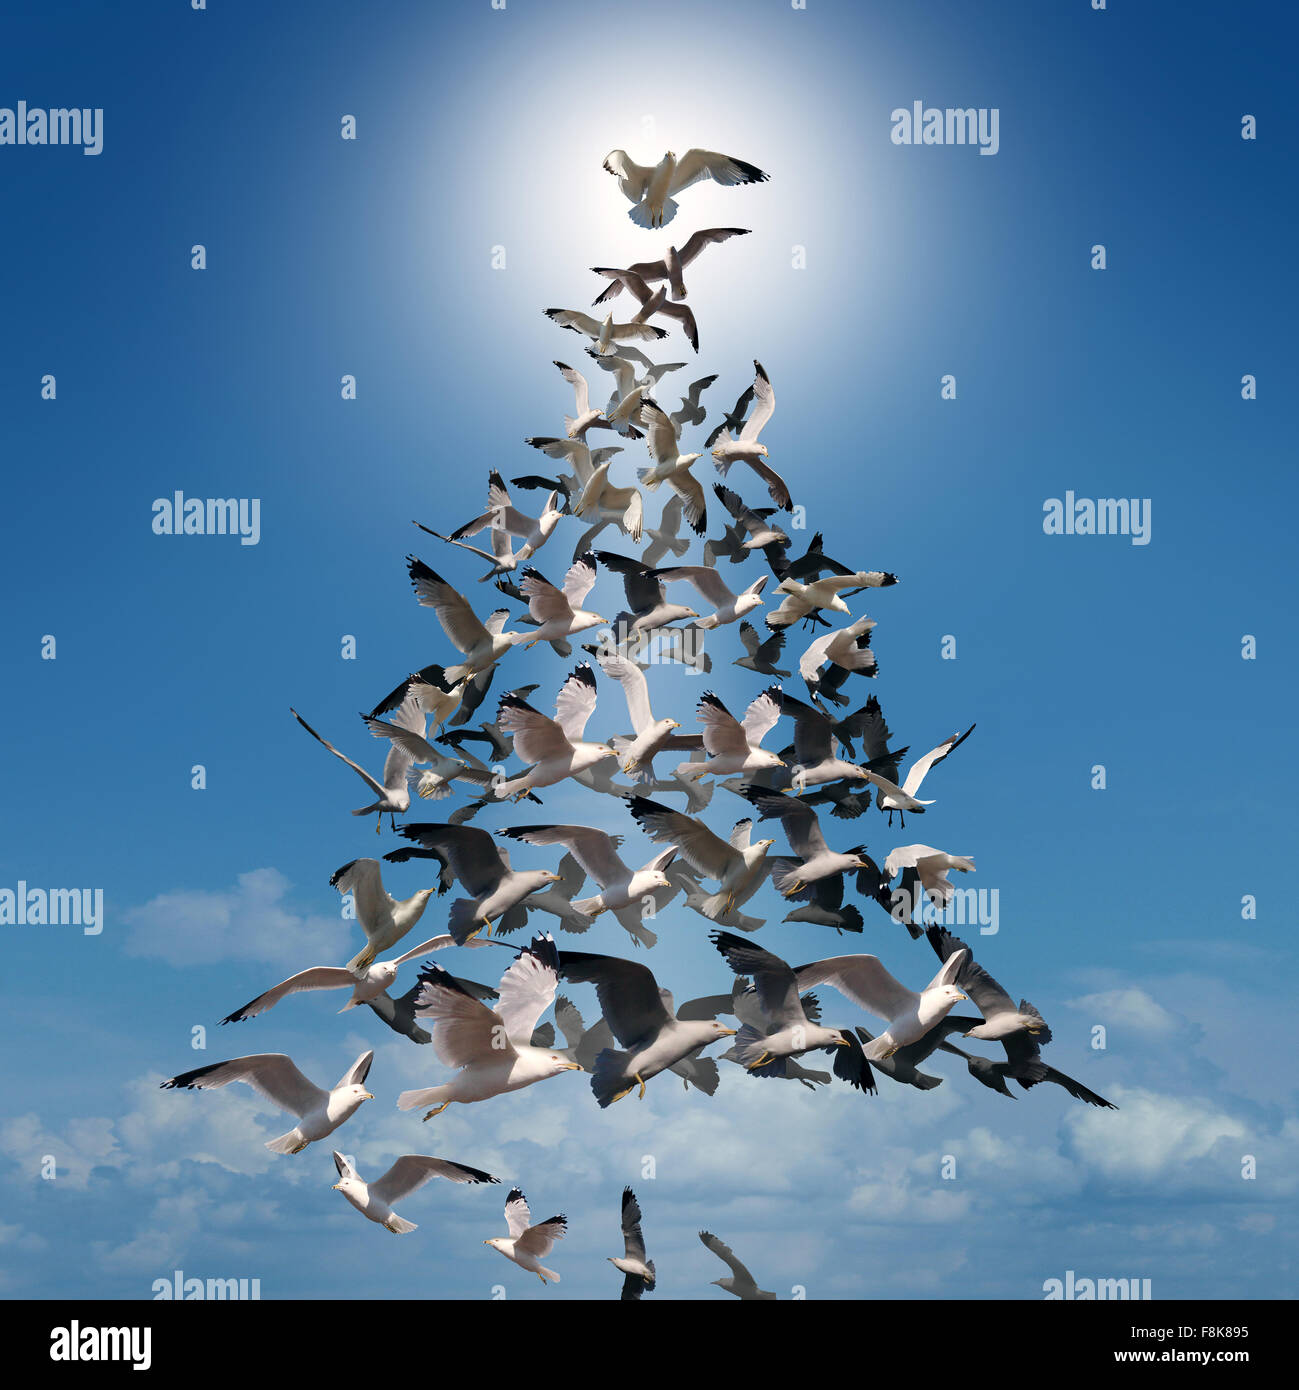 Holiday tree of hope spiritual concept as a group of birds flying in coordinated style shaped as a Christmas tree - Stock Image